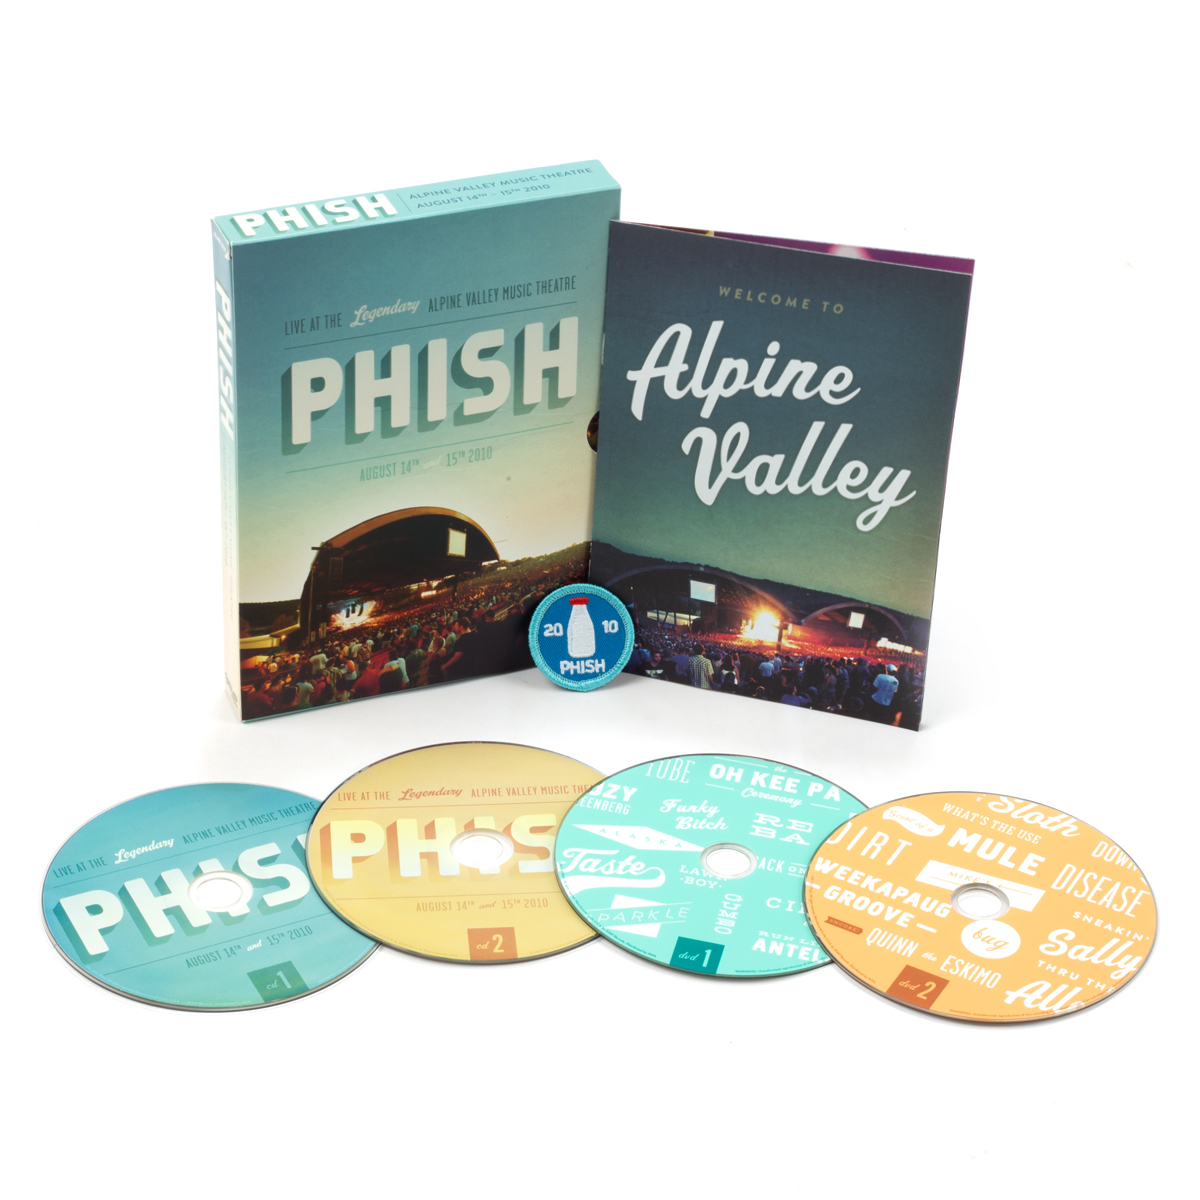 Phish Alpine Valley 2010 2-DVD/2-CD Box Set